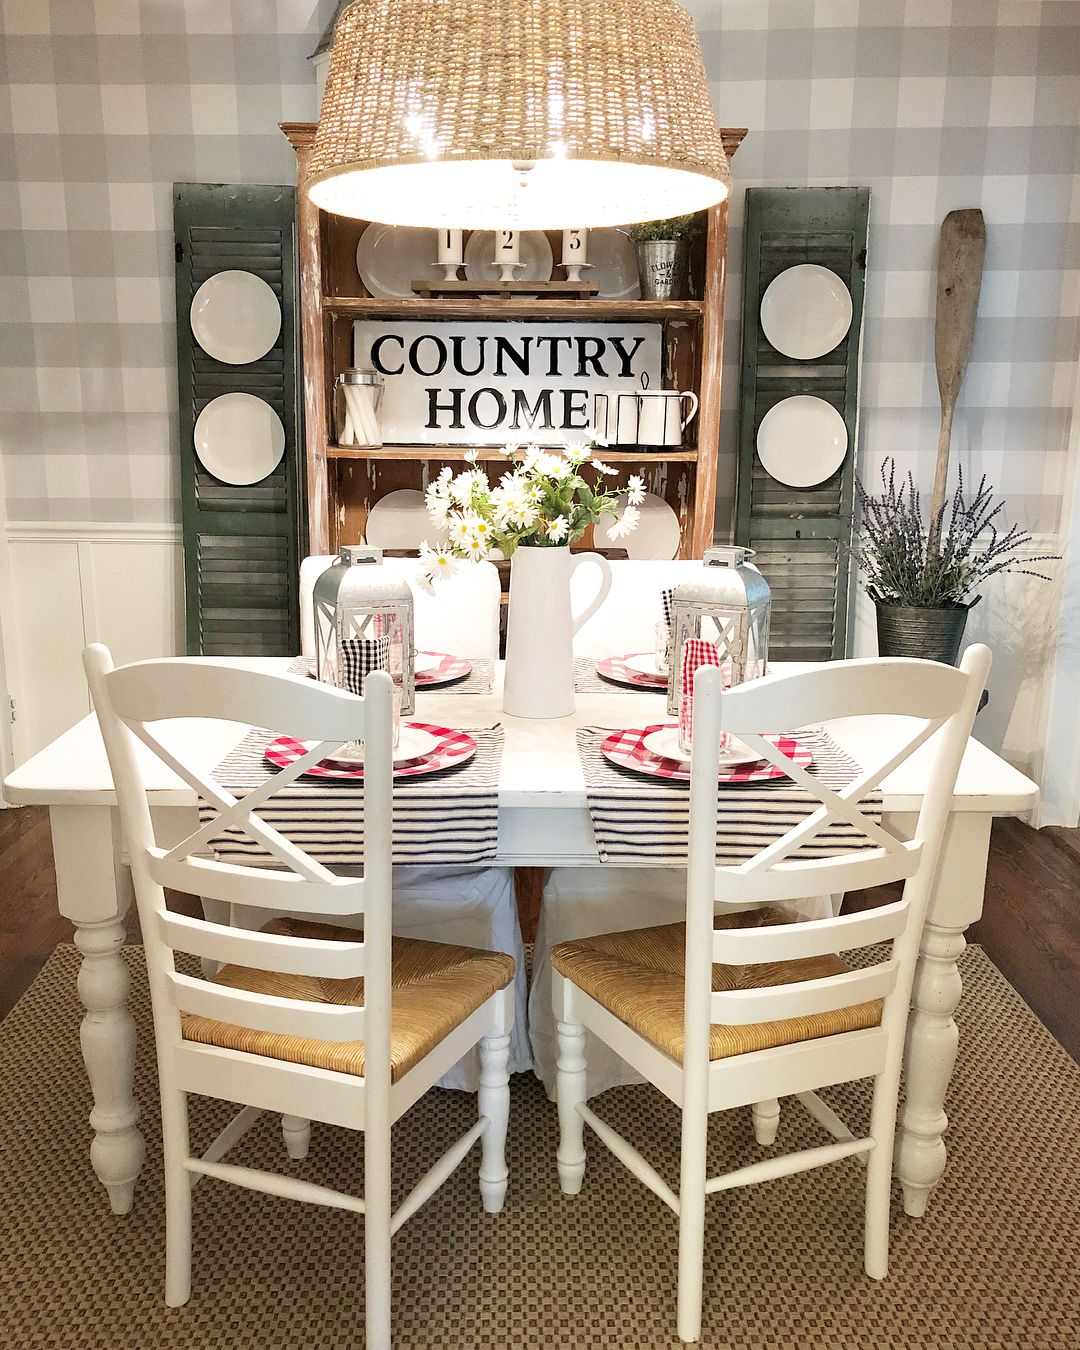 Gingham farmhouse plaid peel and stick wallpaper in a